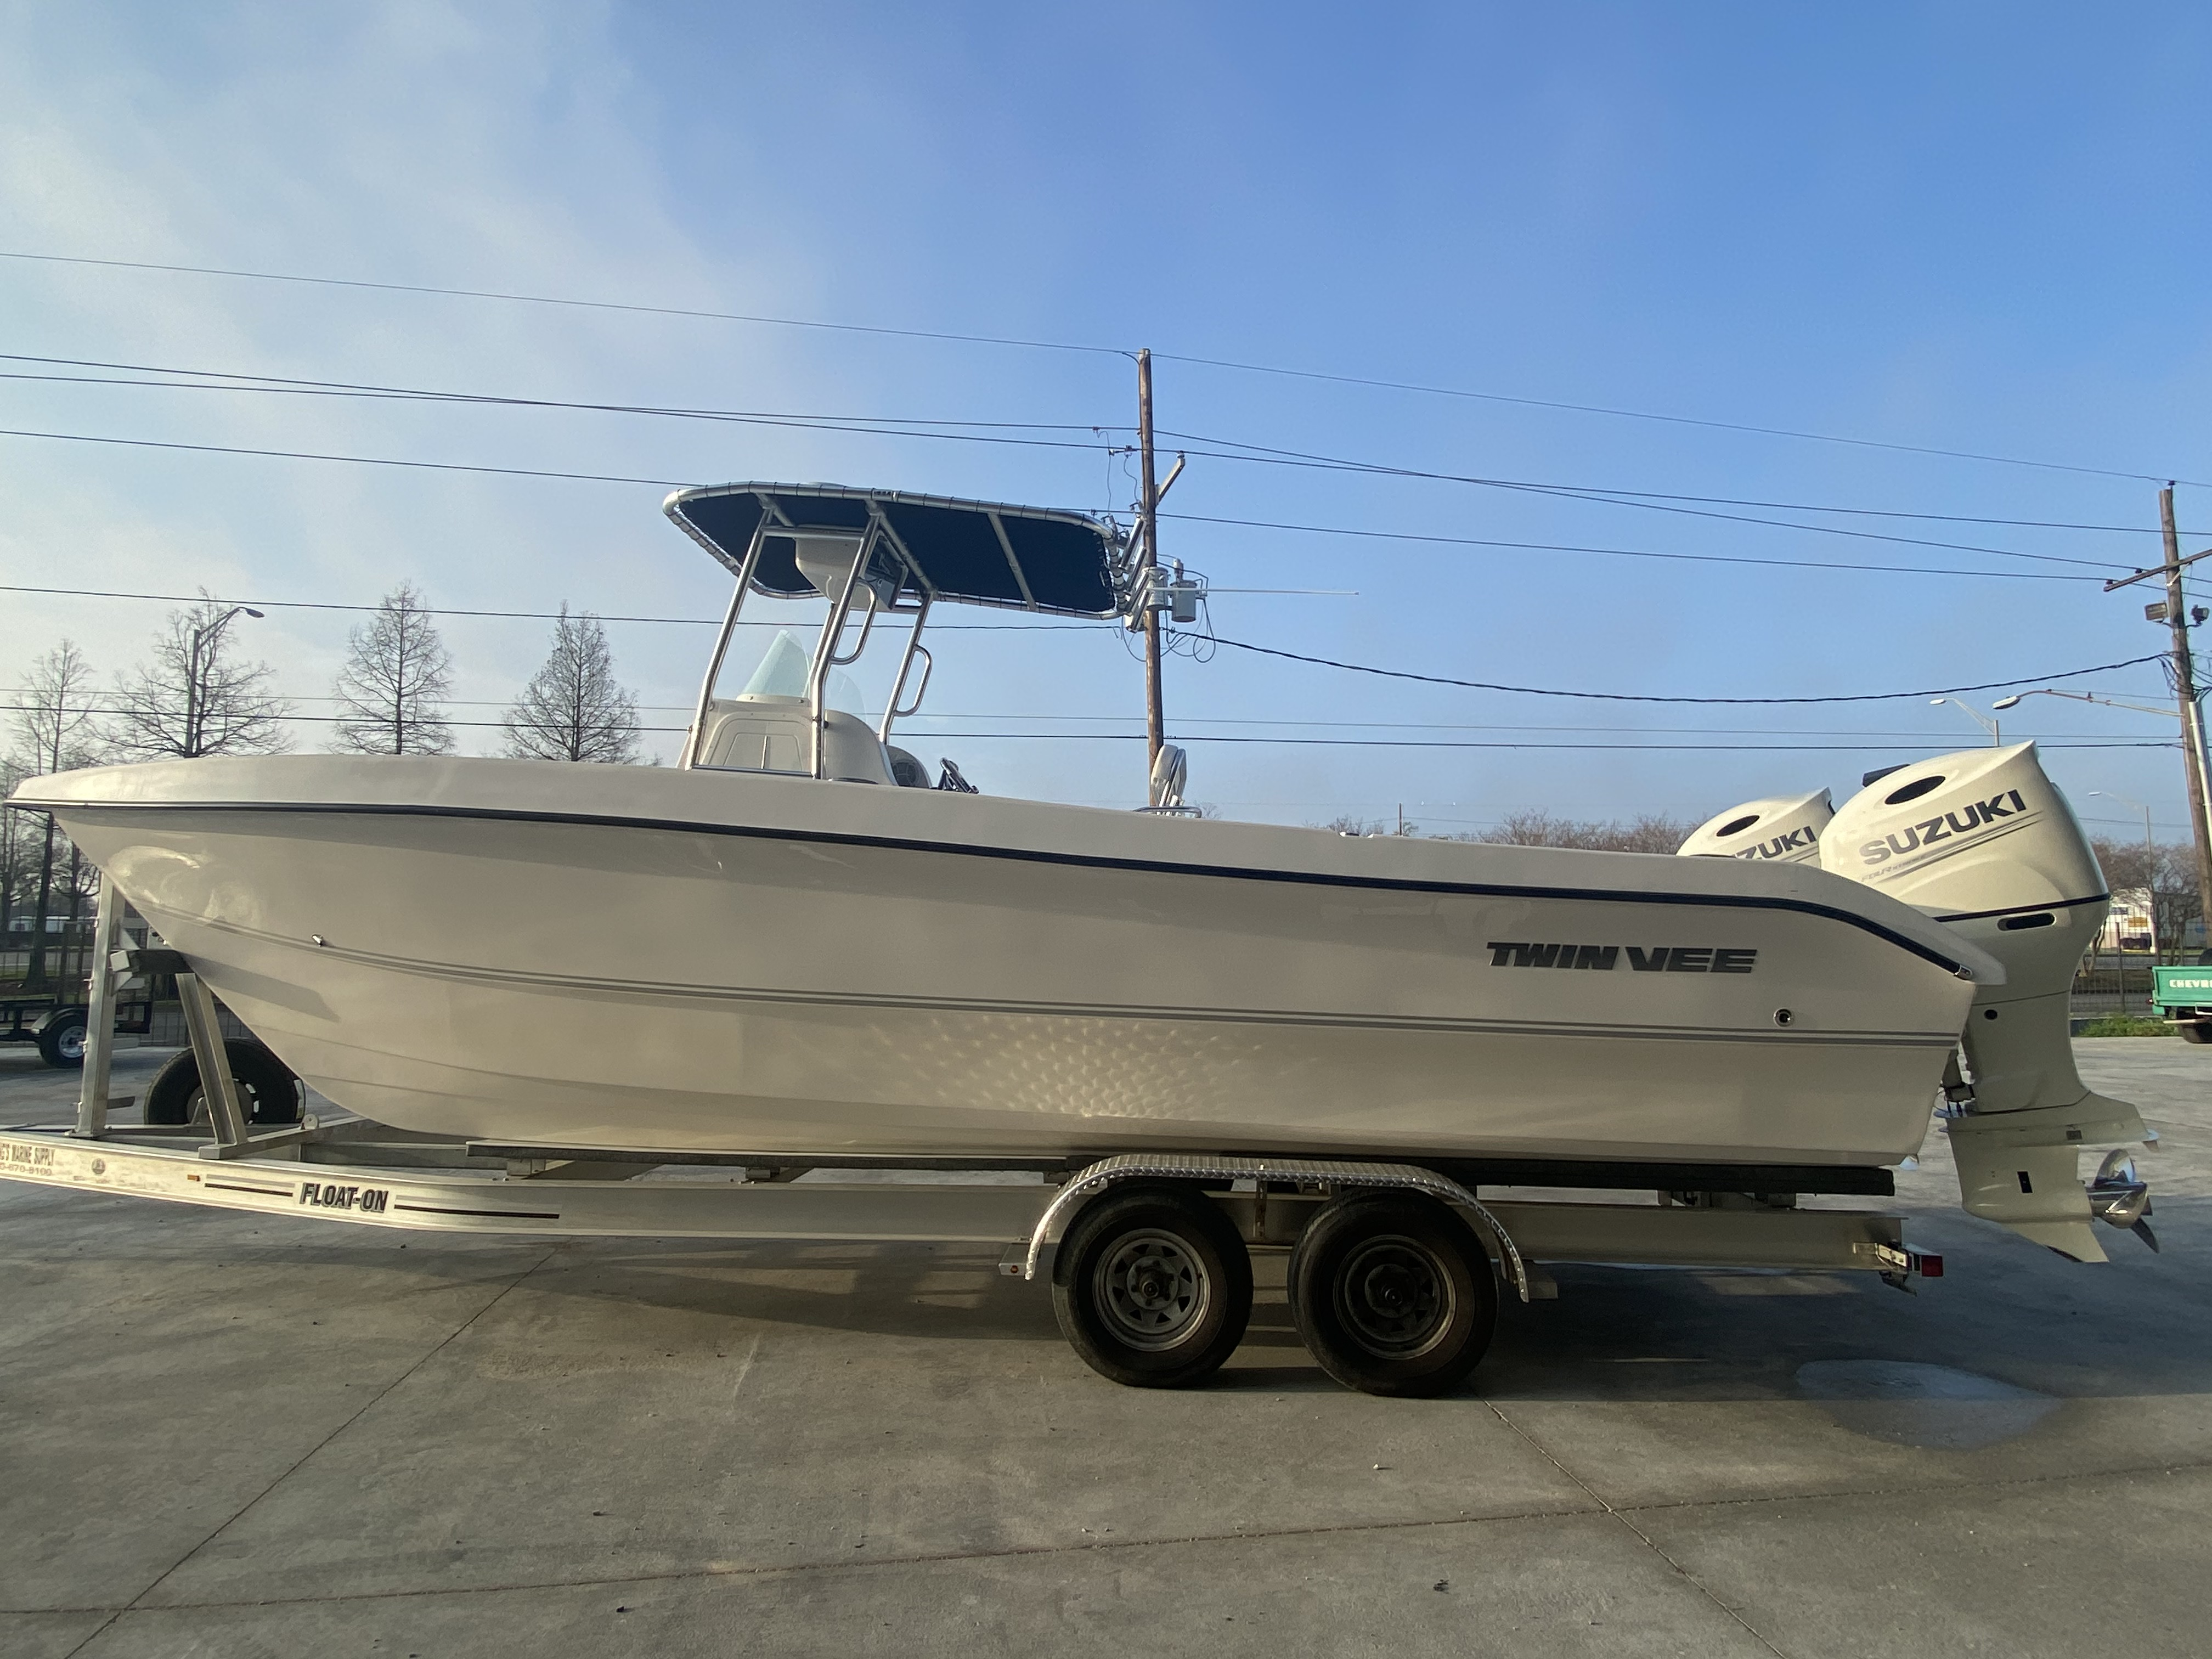 2020 Twin Vee boat for sale, model of the boat is 26 Pro & Image # 13 of 24